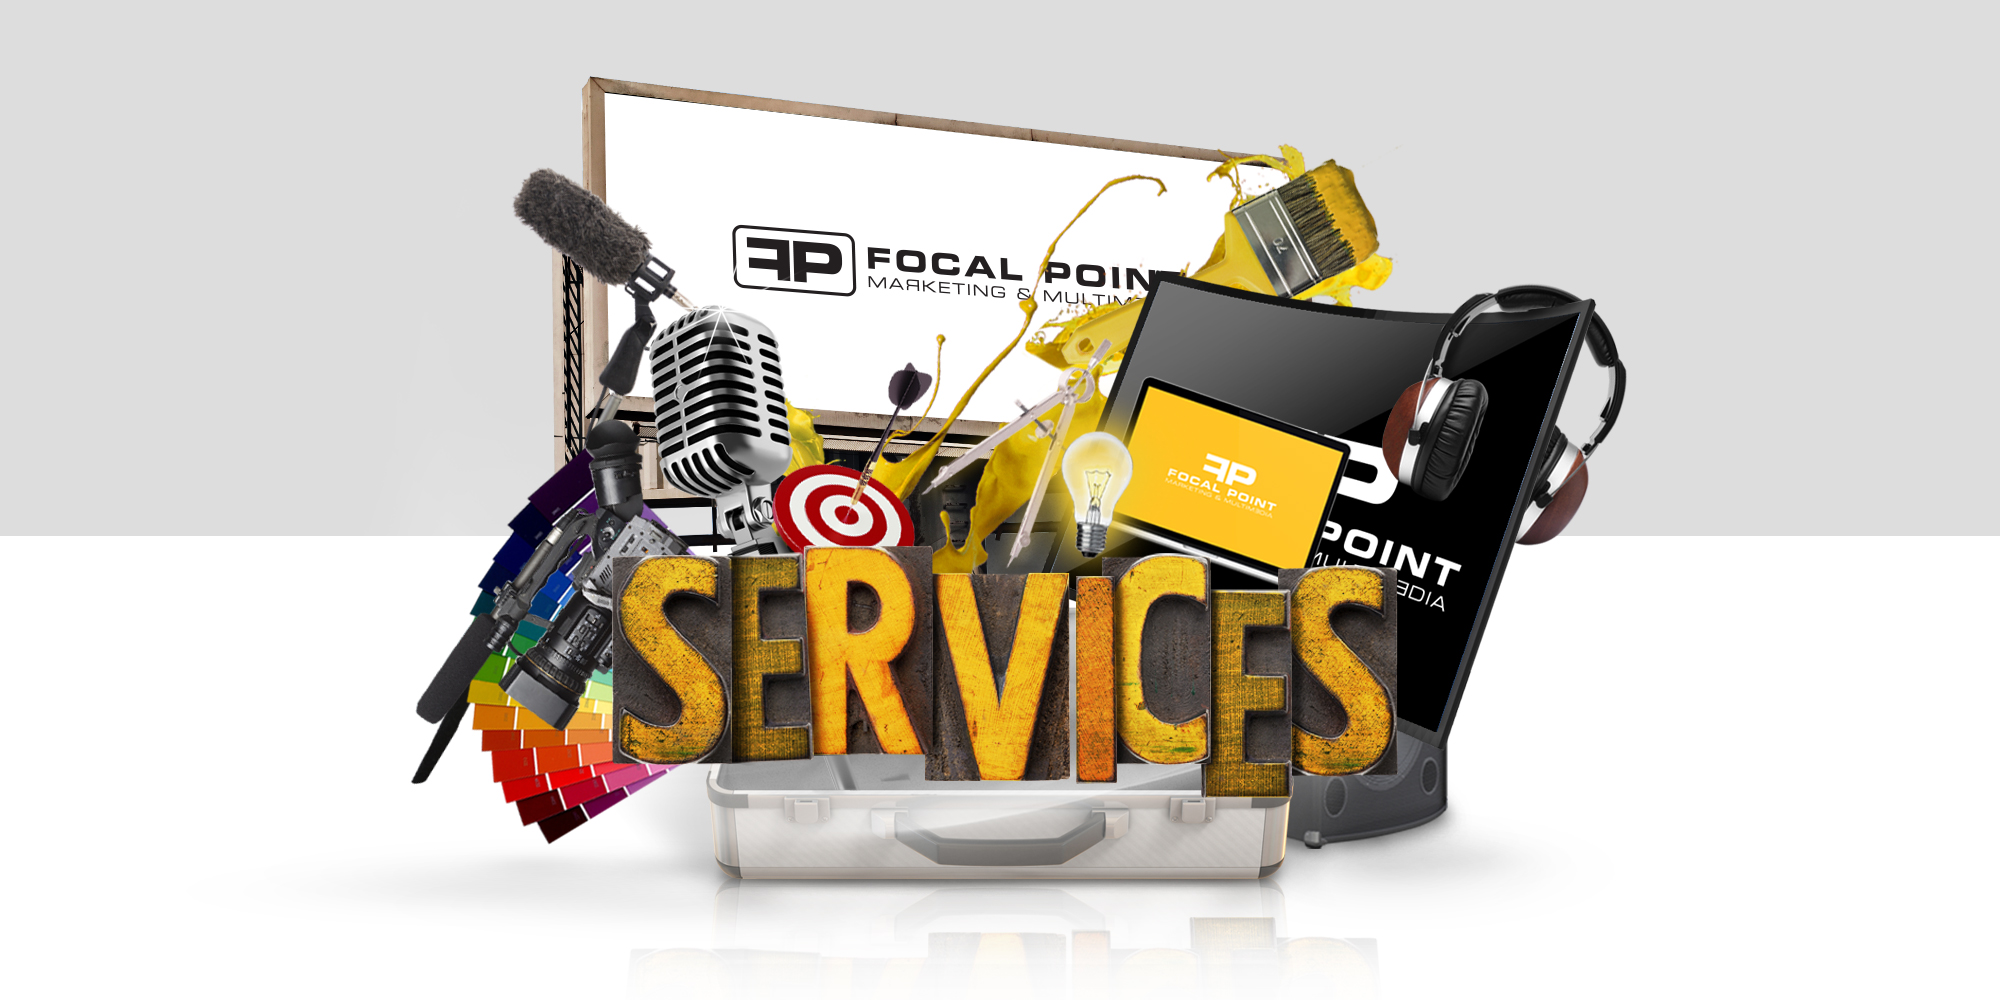 Focal Piont services